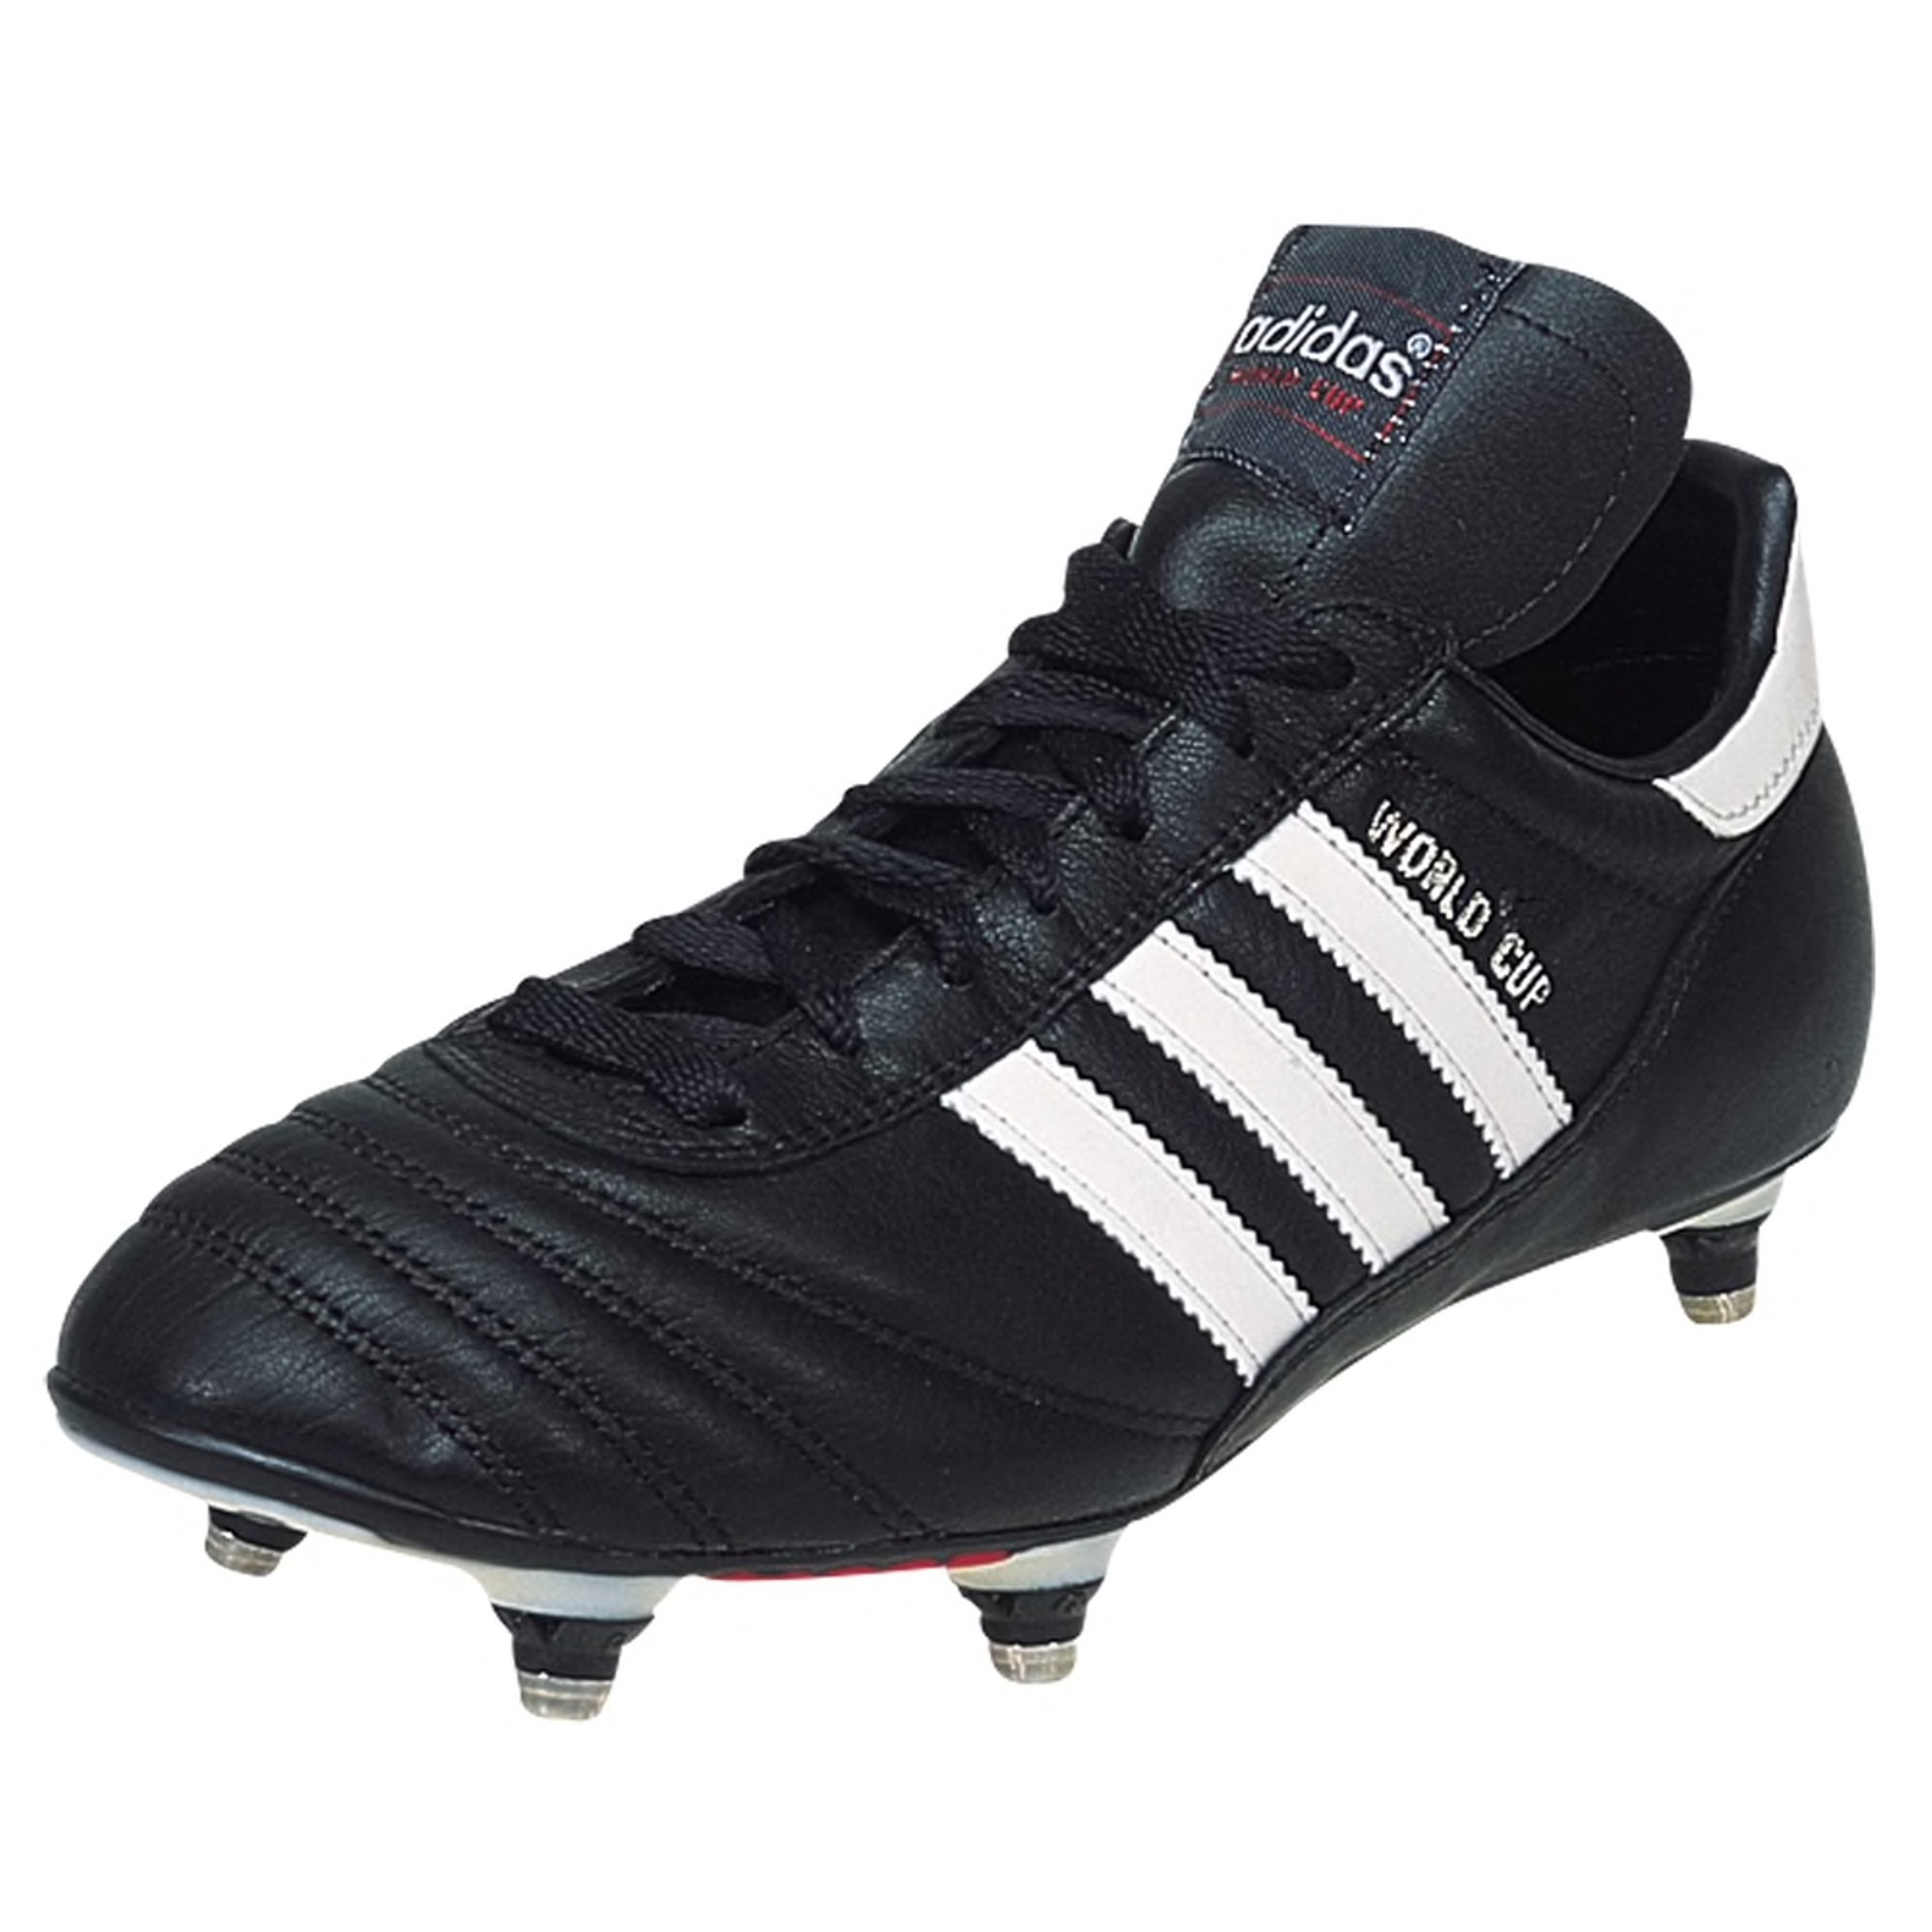 adidas World Cup Soft Ground Soccer Cleat - Black/White